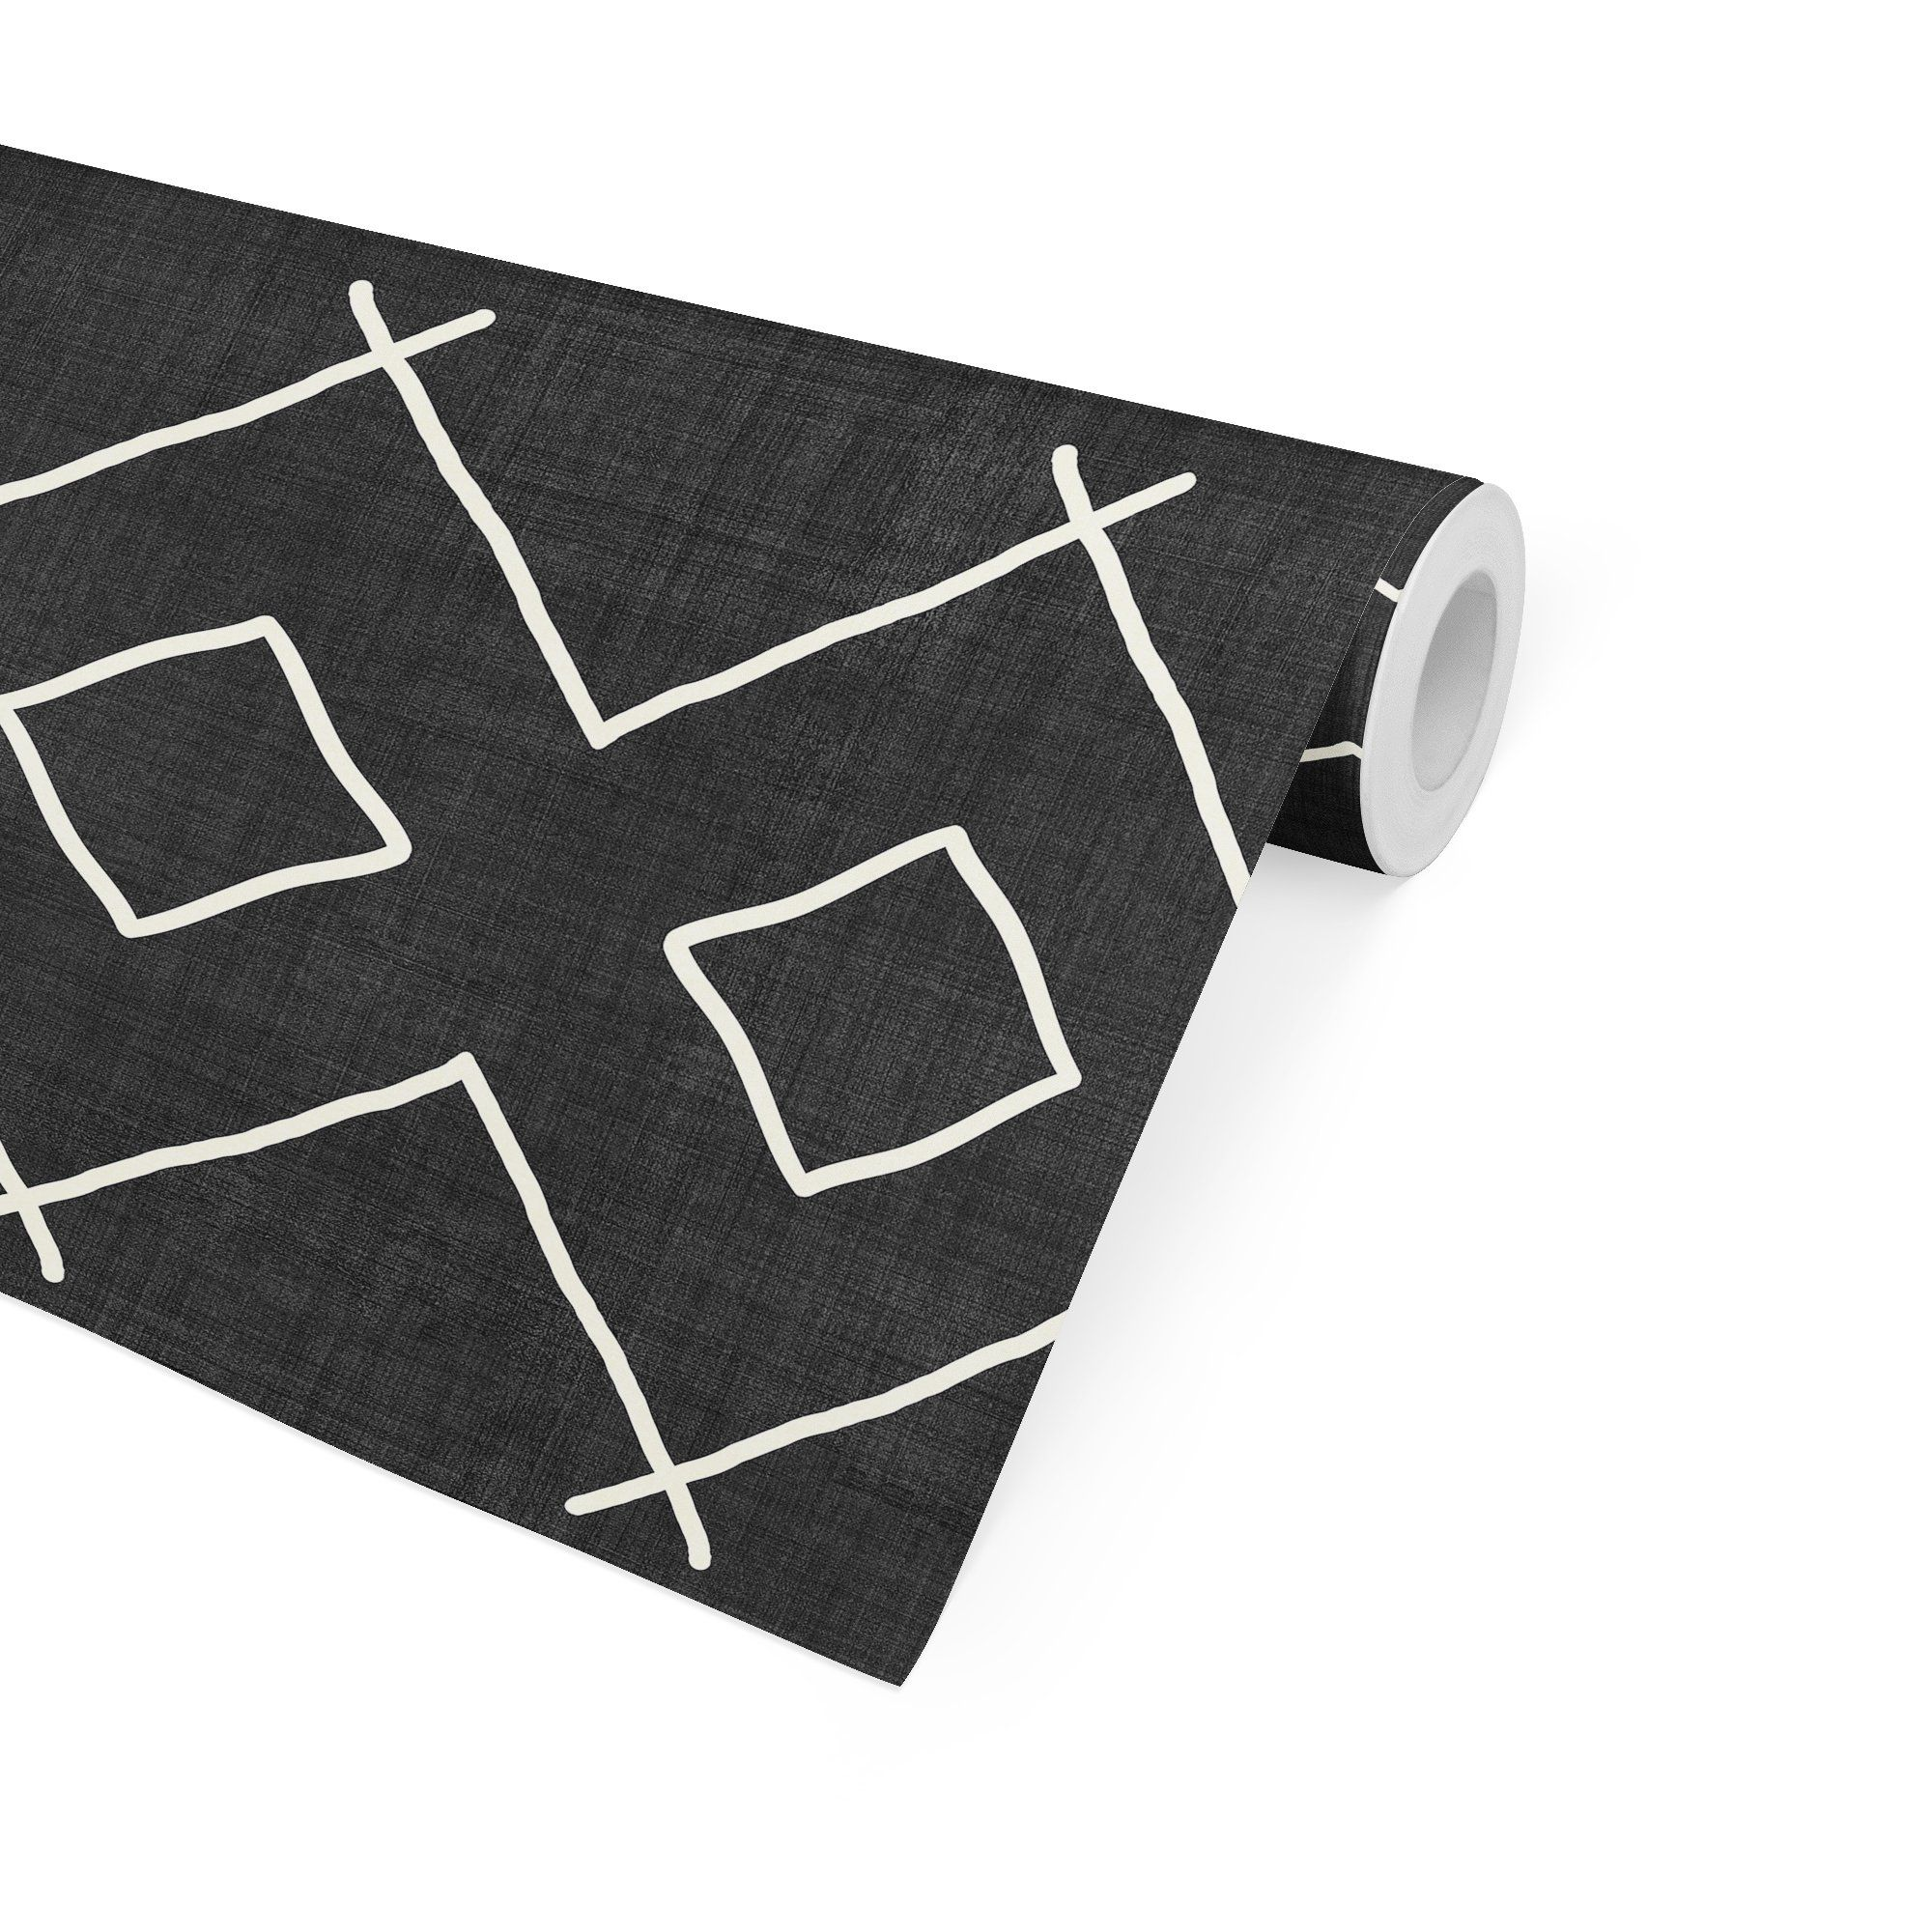 BATH BLACK & WHITE Peel and Stick Wallpaper By Becky Bailey - 2ft x 16ft